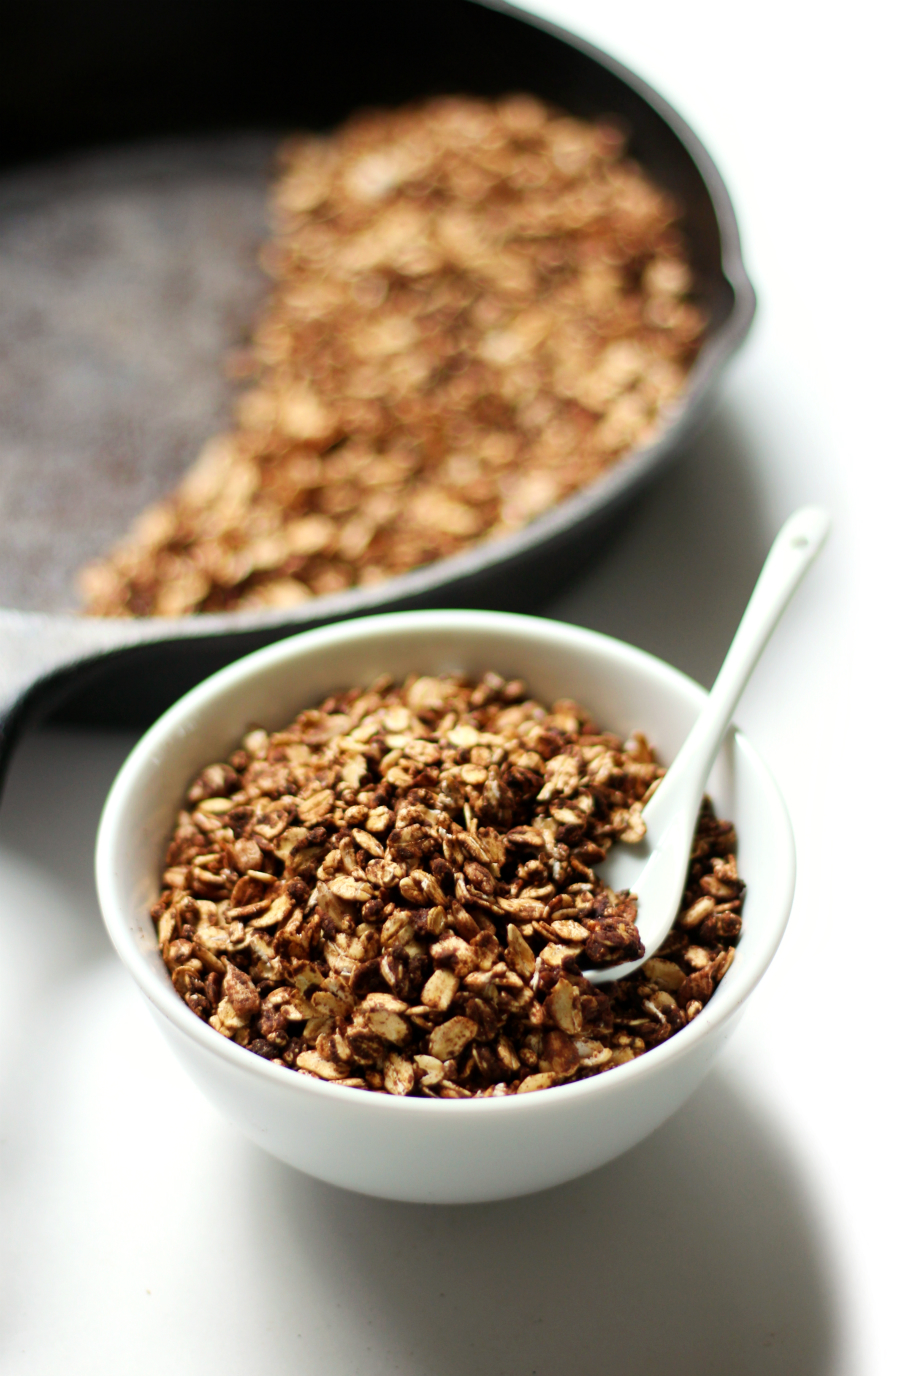 Mint Chocolate Skillet Granola | Strength and Sunshine @RebeccaGF666 Minty, chocolatey, and made right on the stove in the cast iron skillet! A Mint Chocolate Skillet Granola recipe that's gluten-free, vegan, nut-free, and allergy-free! Perfect for breakfast, as a snack, or dessert topping!